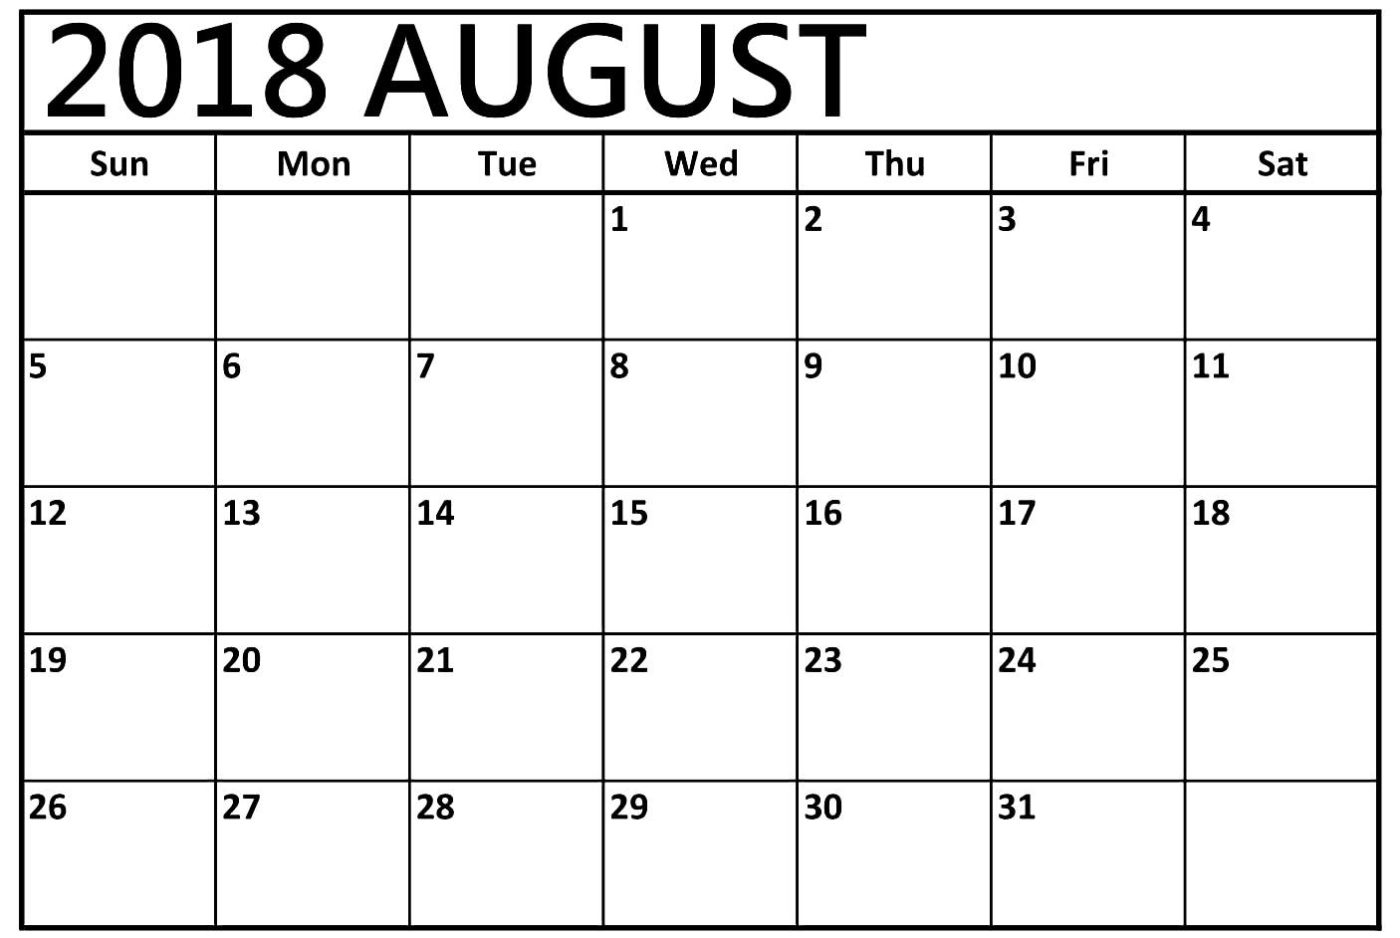 august 2018 editable calendar template download public holidays Free Pretty Printable Calendars August 2018 erdferdf